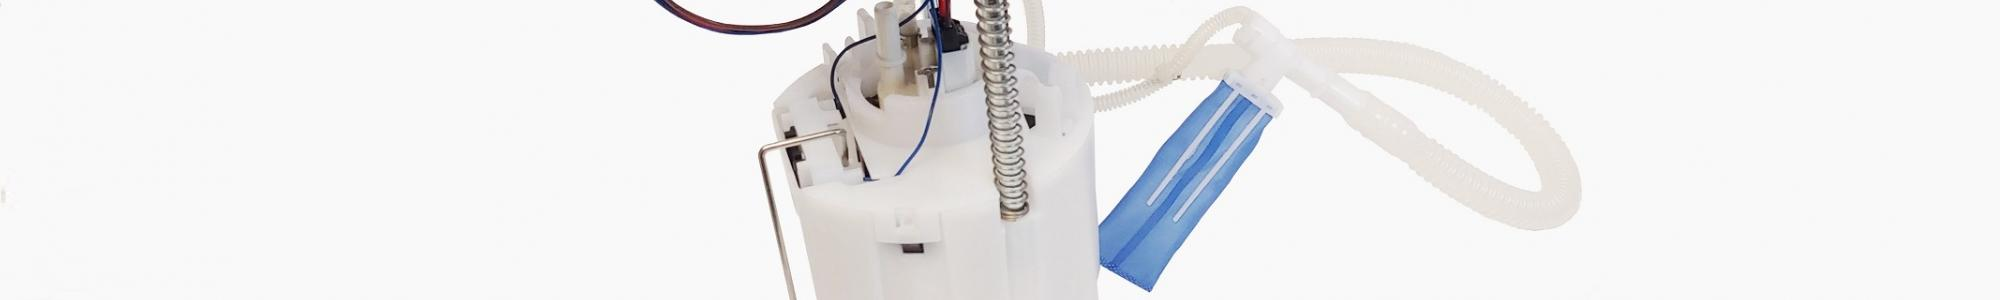 Enhanced fuel pump delivery module from Delphi Technologies with blue plastic top and blue strainer